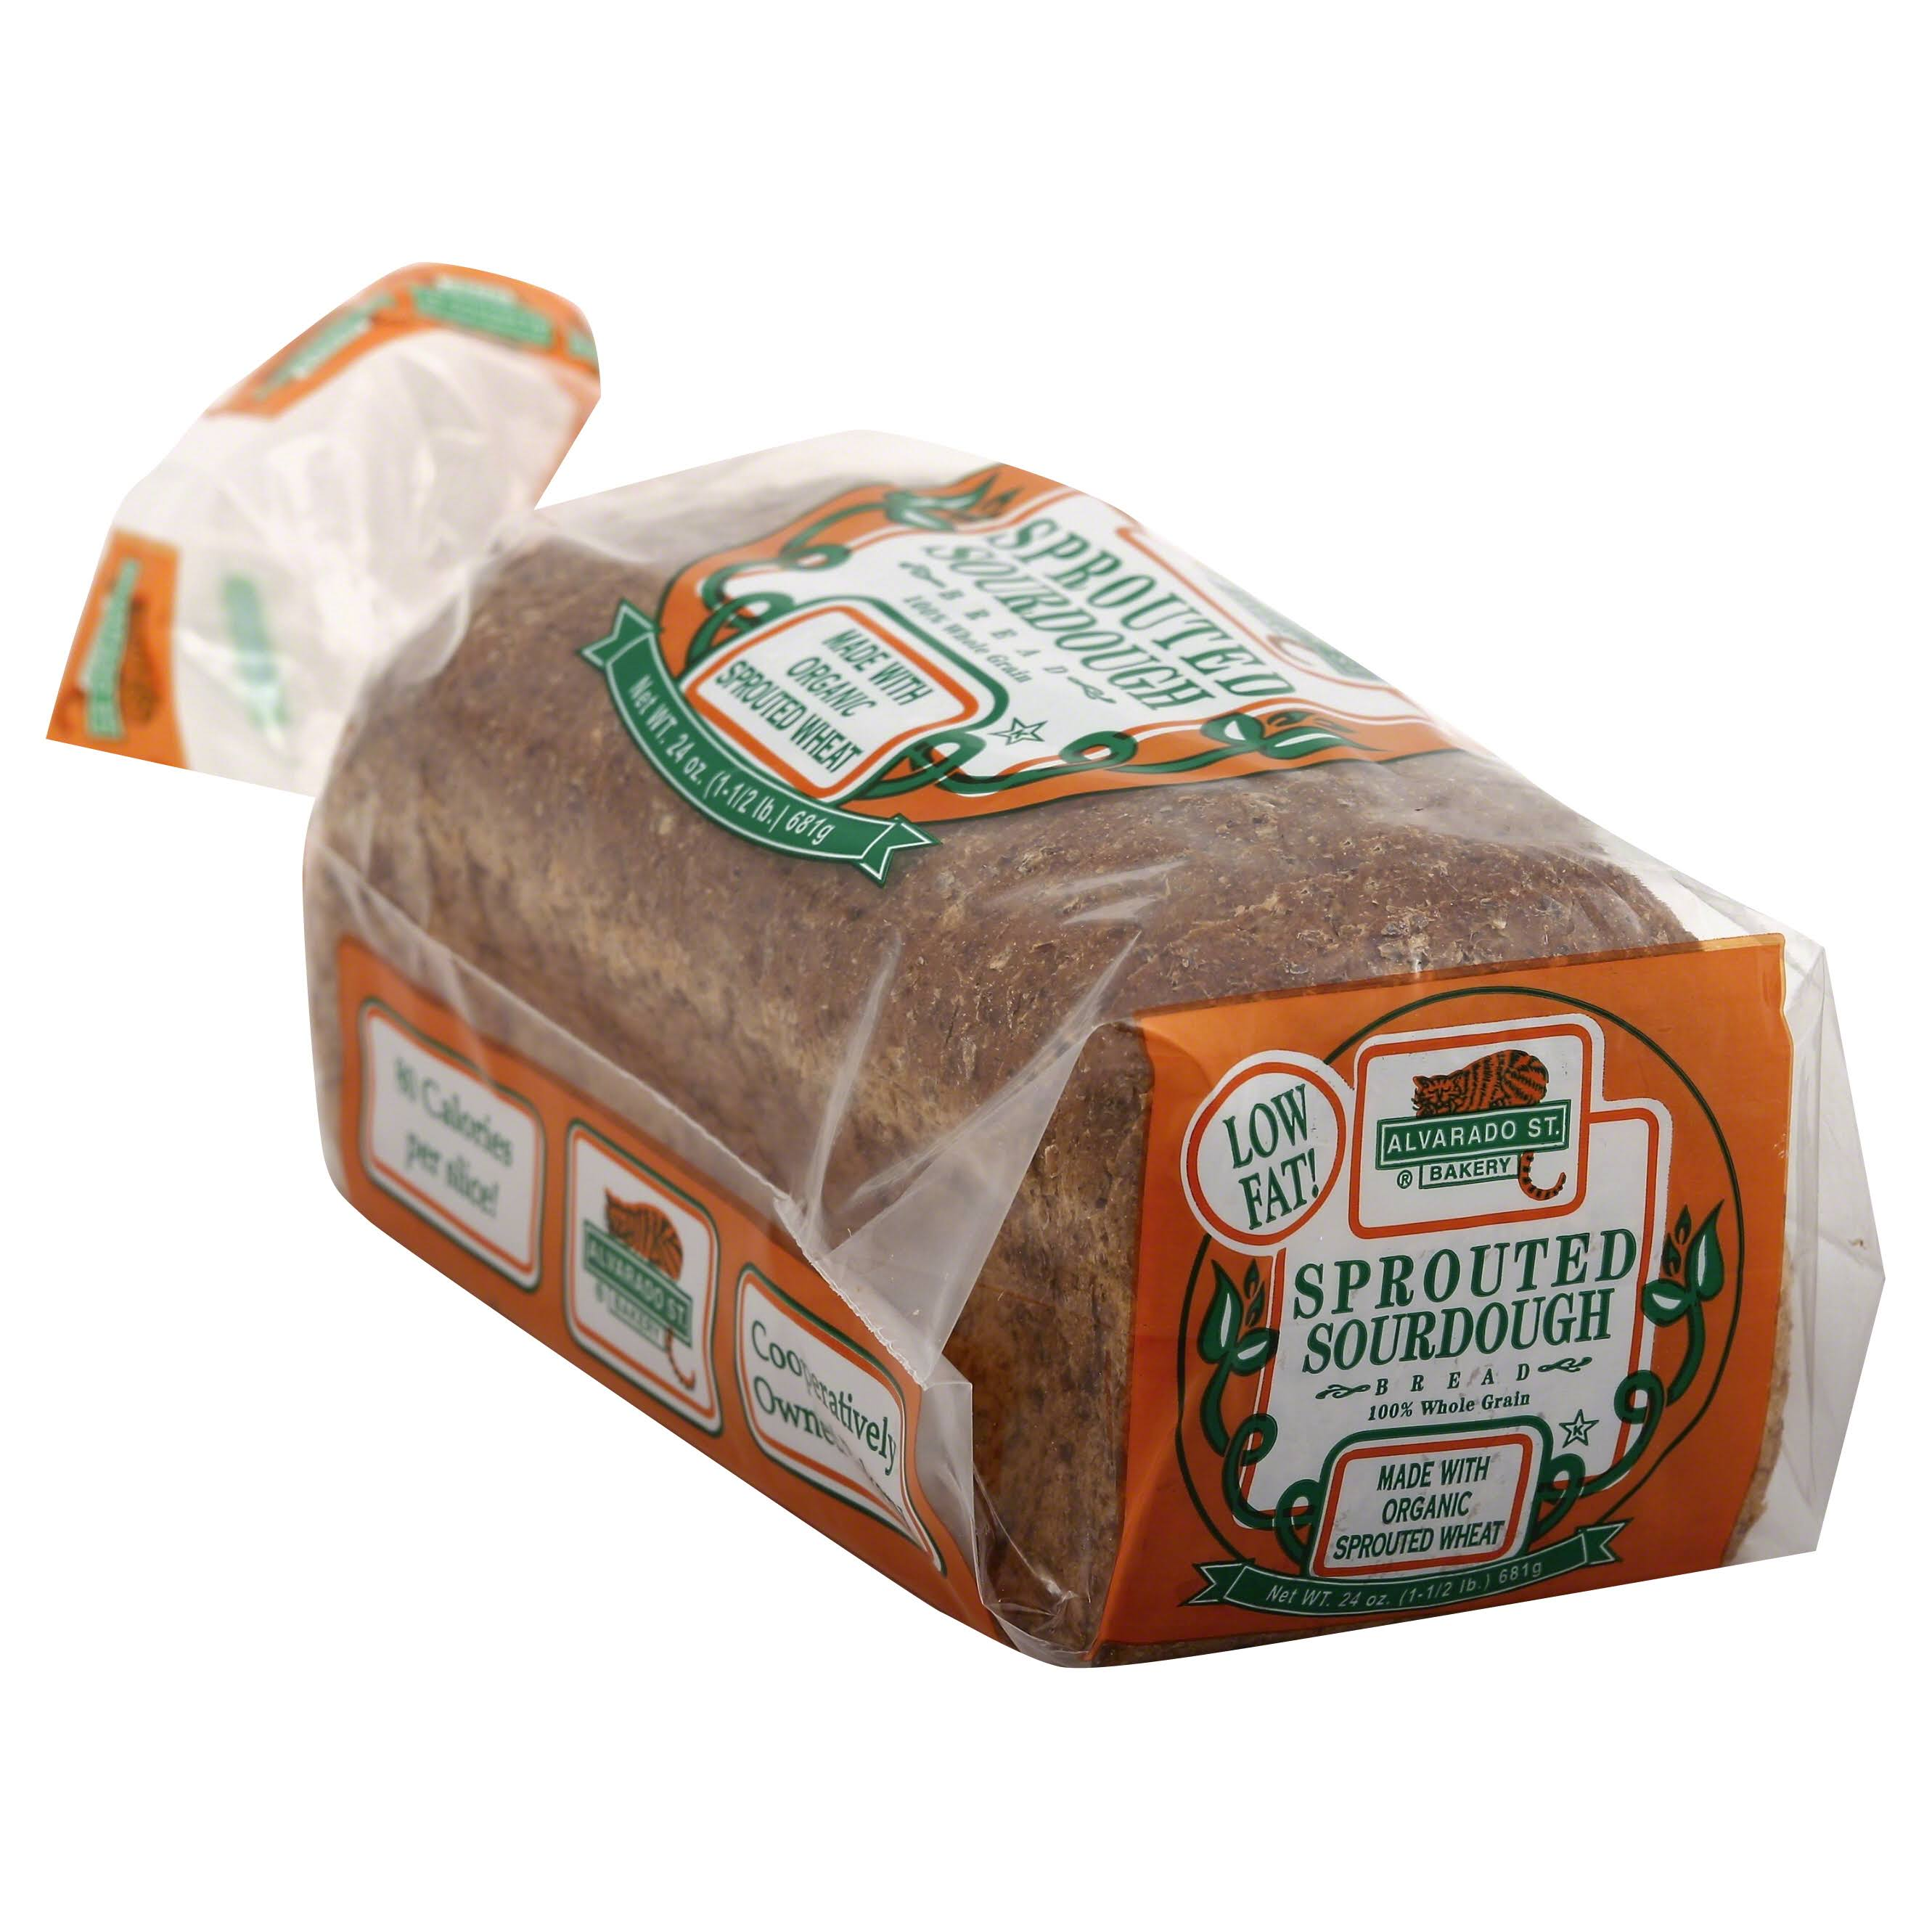 Alvarado St Bakery Organic Sprouted Sourdough Bread - 24oz